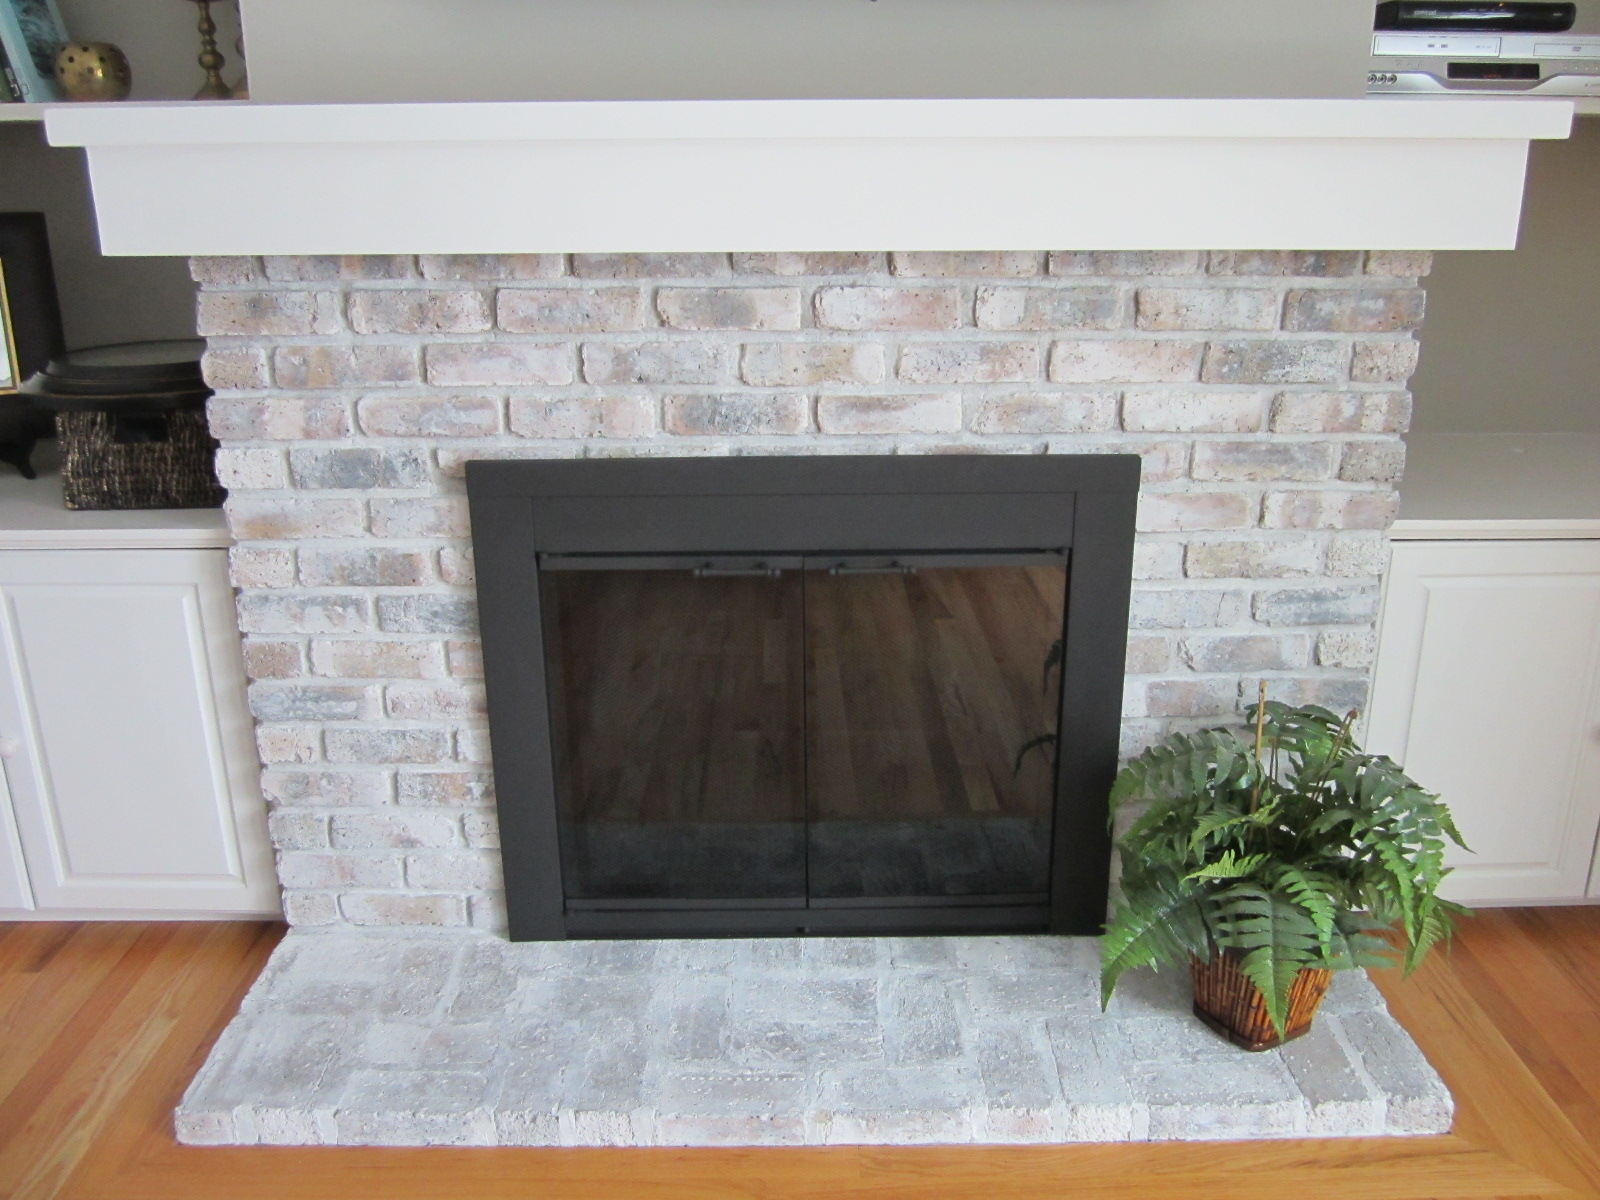 Heat Resistant Paint Fireplace Update Fireplace Doors With Spray Paint Home Staging In